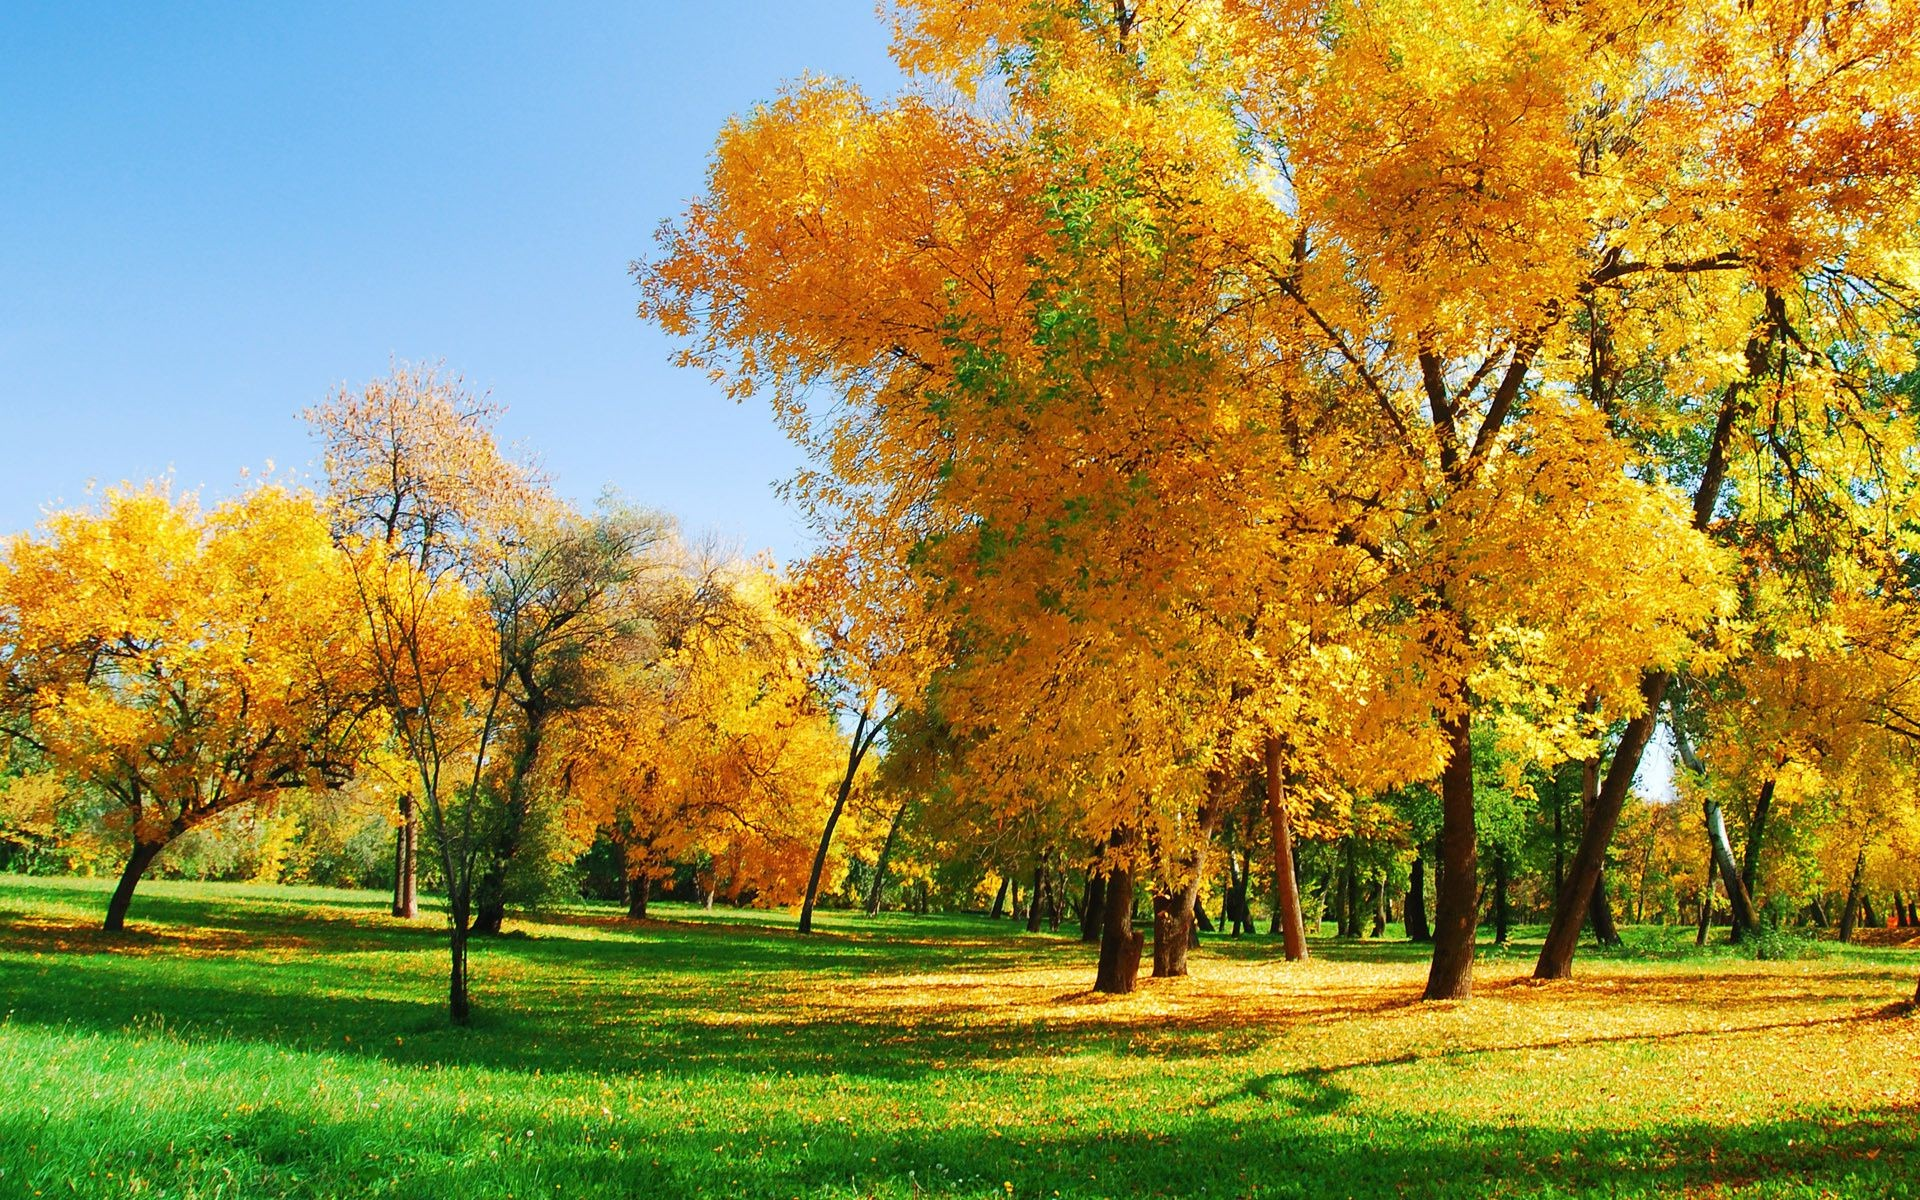 trees fall tree leaf season park landscape nature rural branch bright maple fair weather countryside gold wood scene grass scenery environment scenic